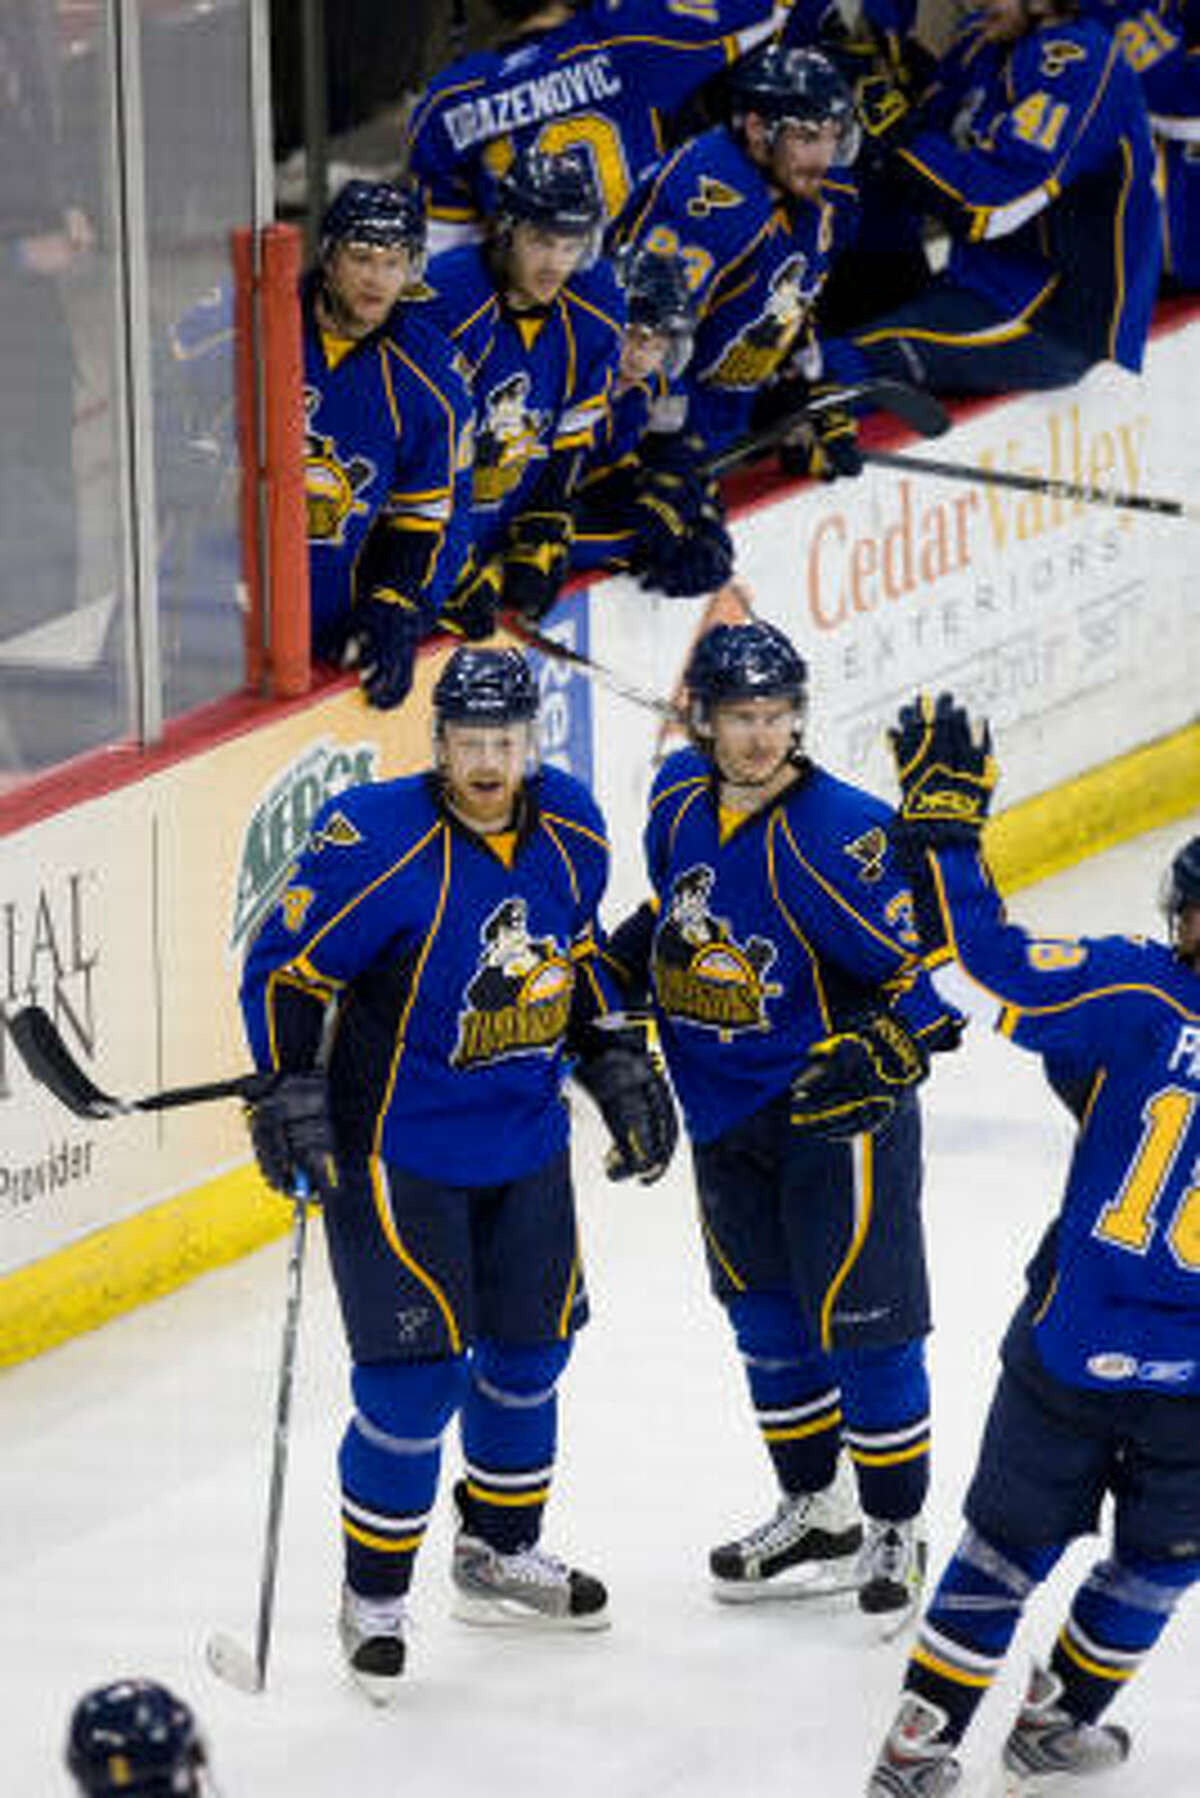 The Peoria Rivermen celebrate after scoring the game's first goal in the second period.